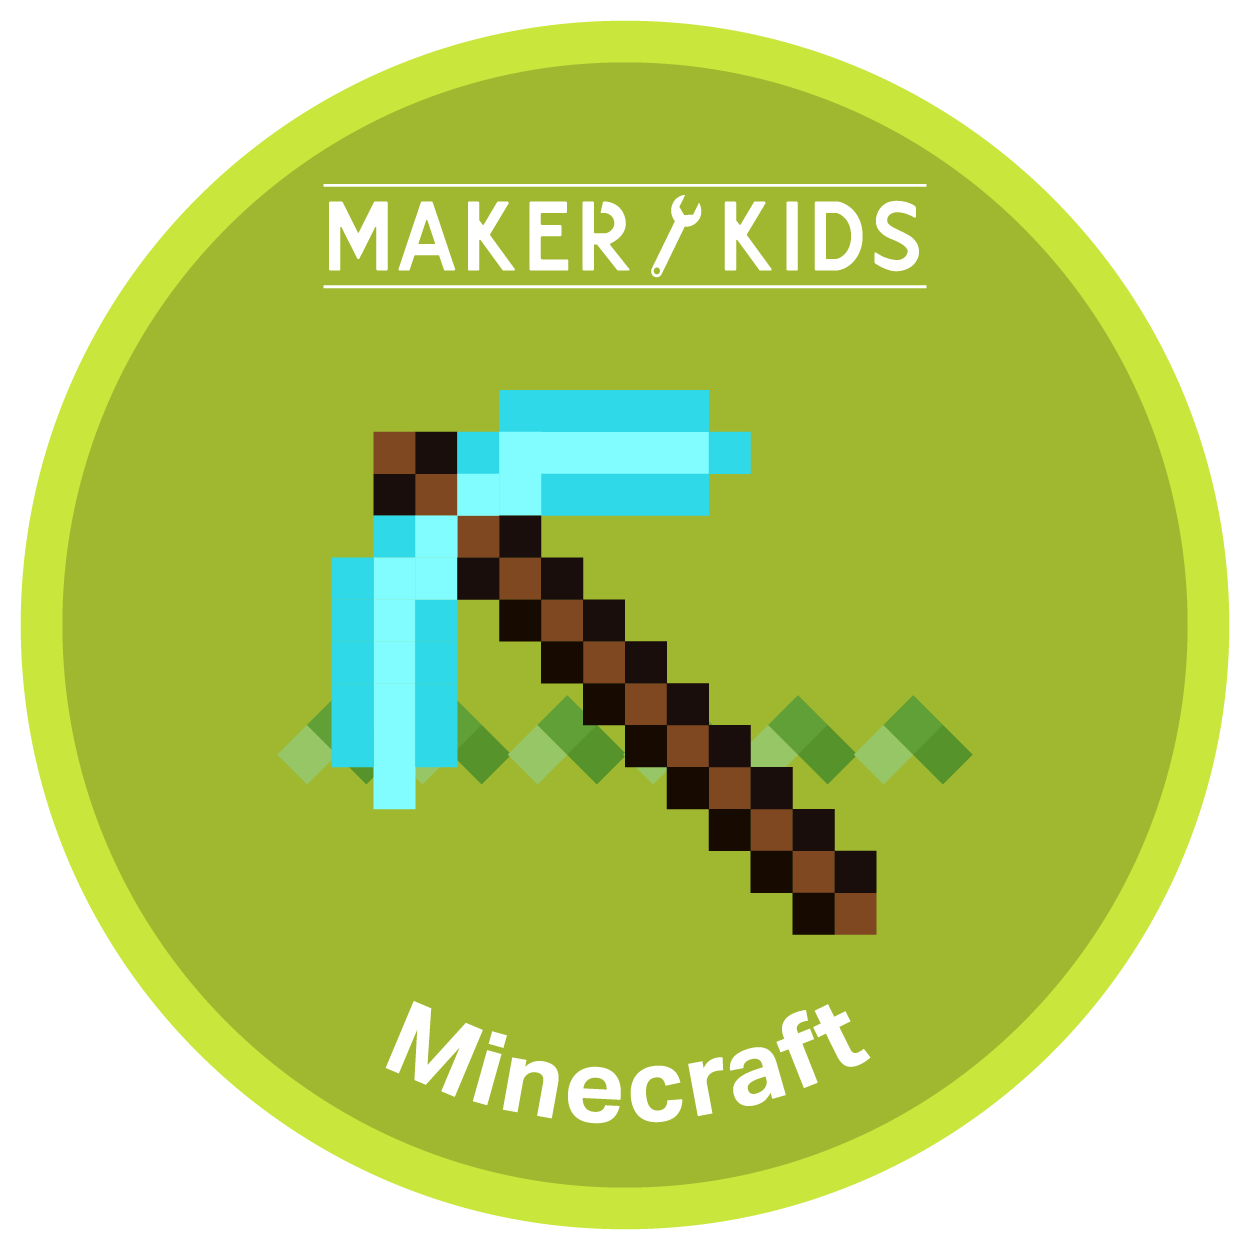 MakerKids Minecraft Toronto